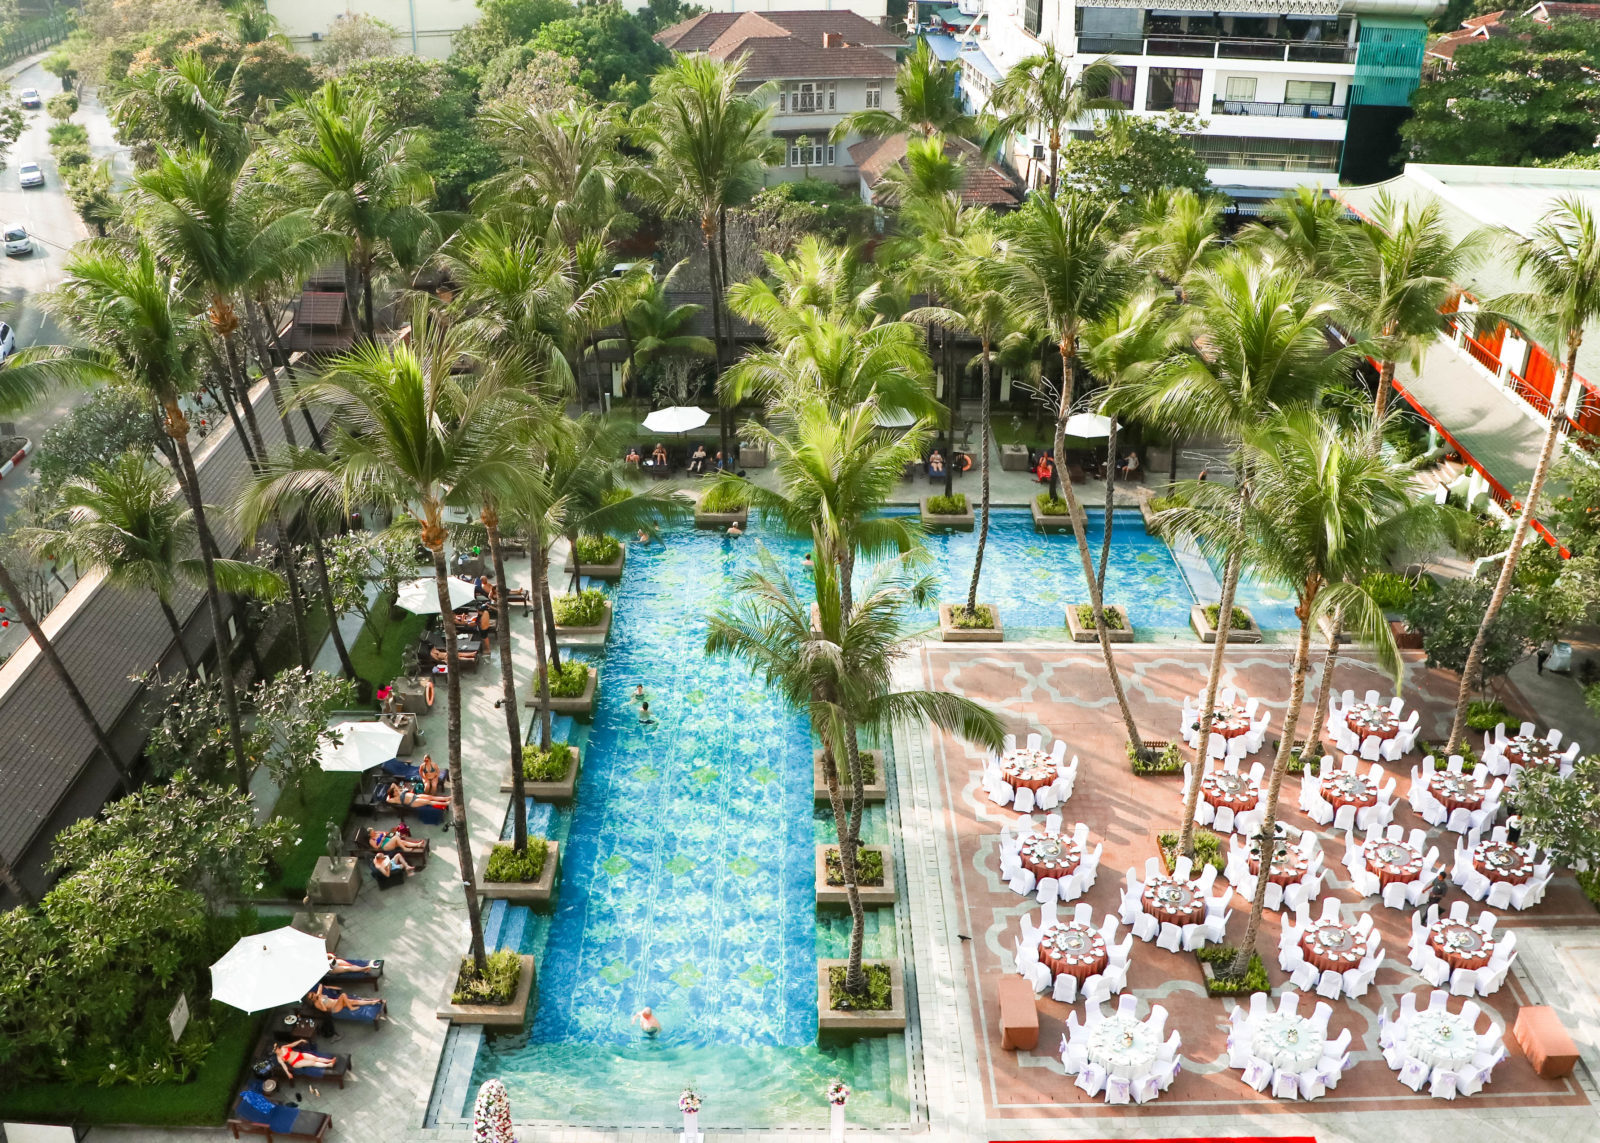 The Chatrium Hotel Royal Lake Yangon Shines As One Of City S Foremost Luxury Hotels By Offering Pure Once Superlative Service And Contemporary